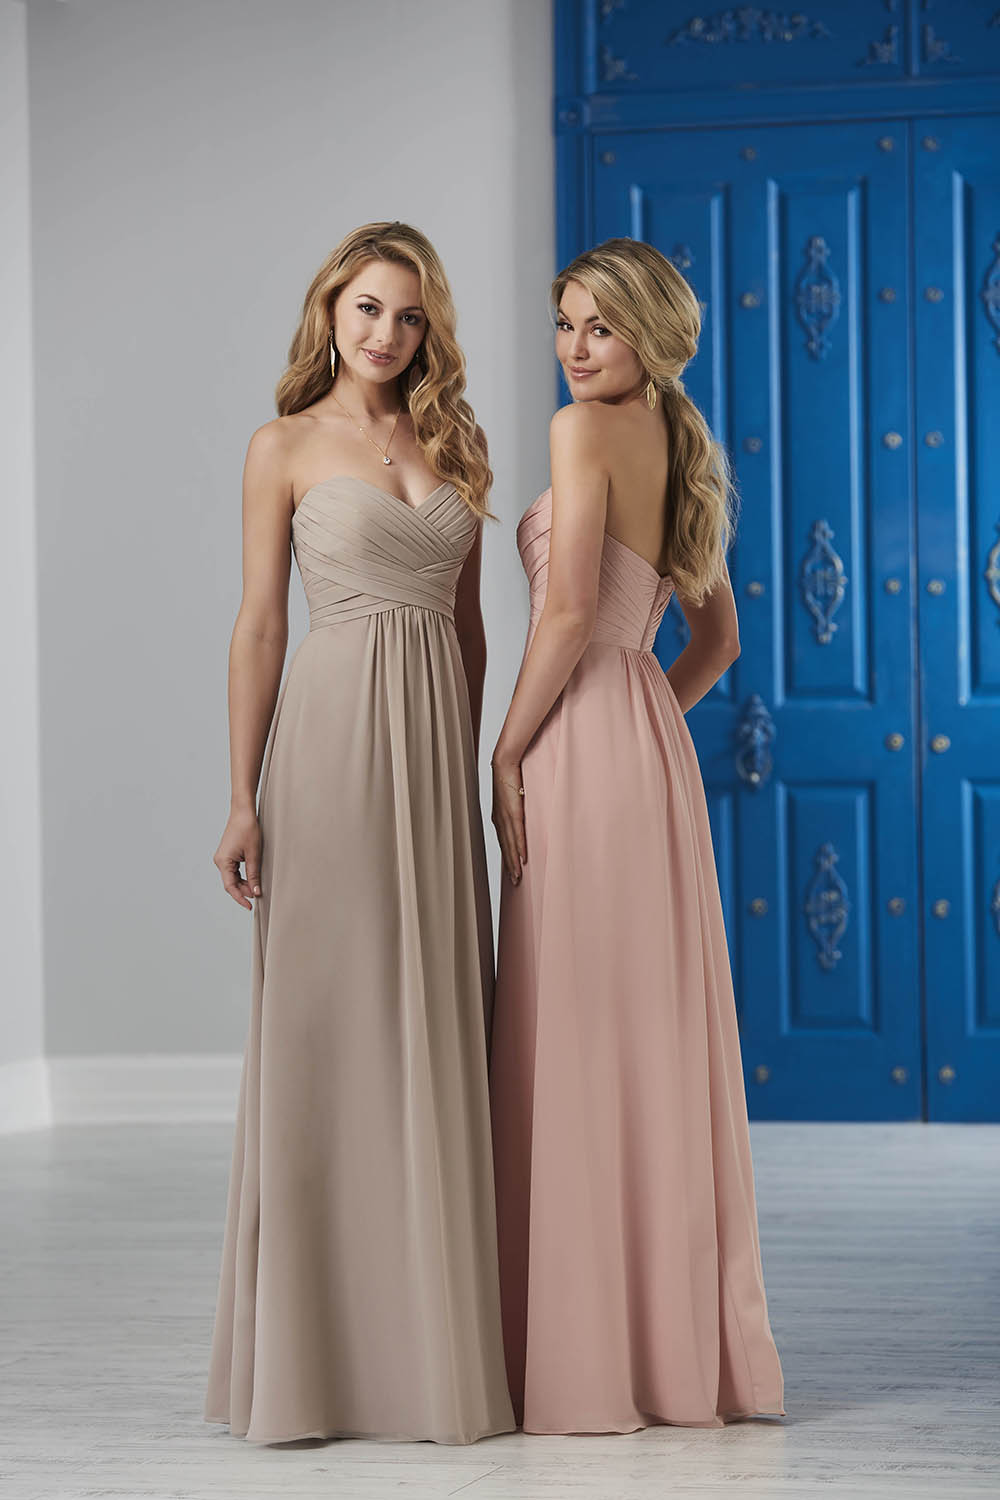 bridesmaid-dresses-jacquelin-bridals-canada-26183